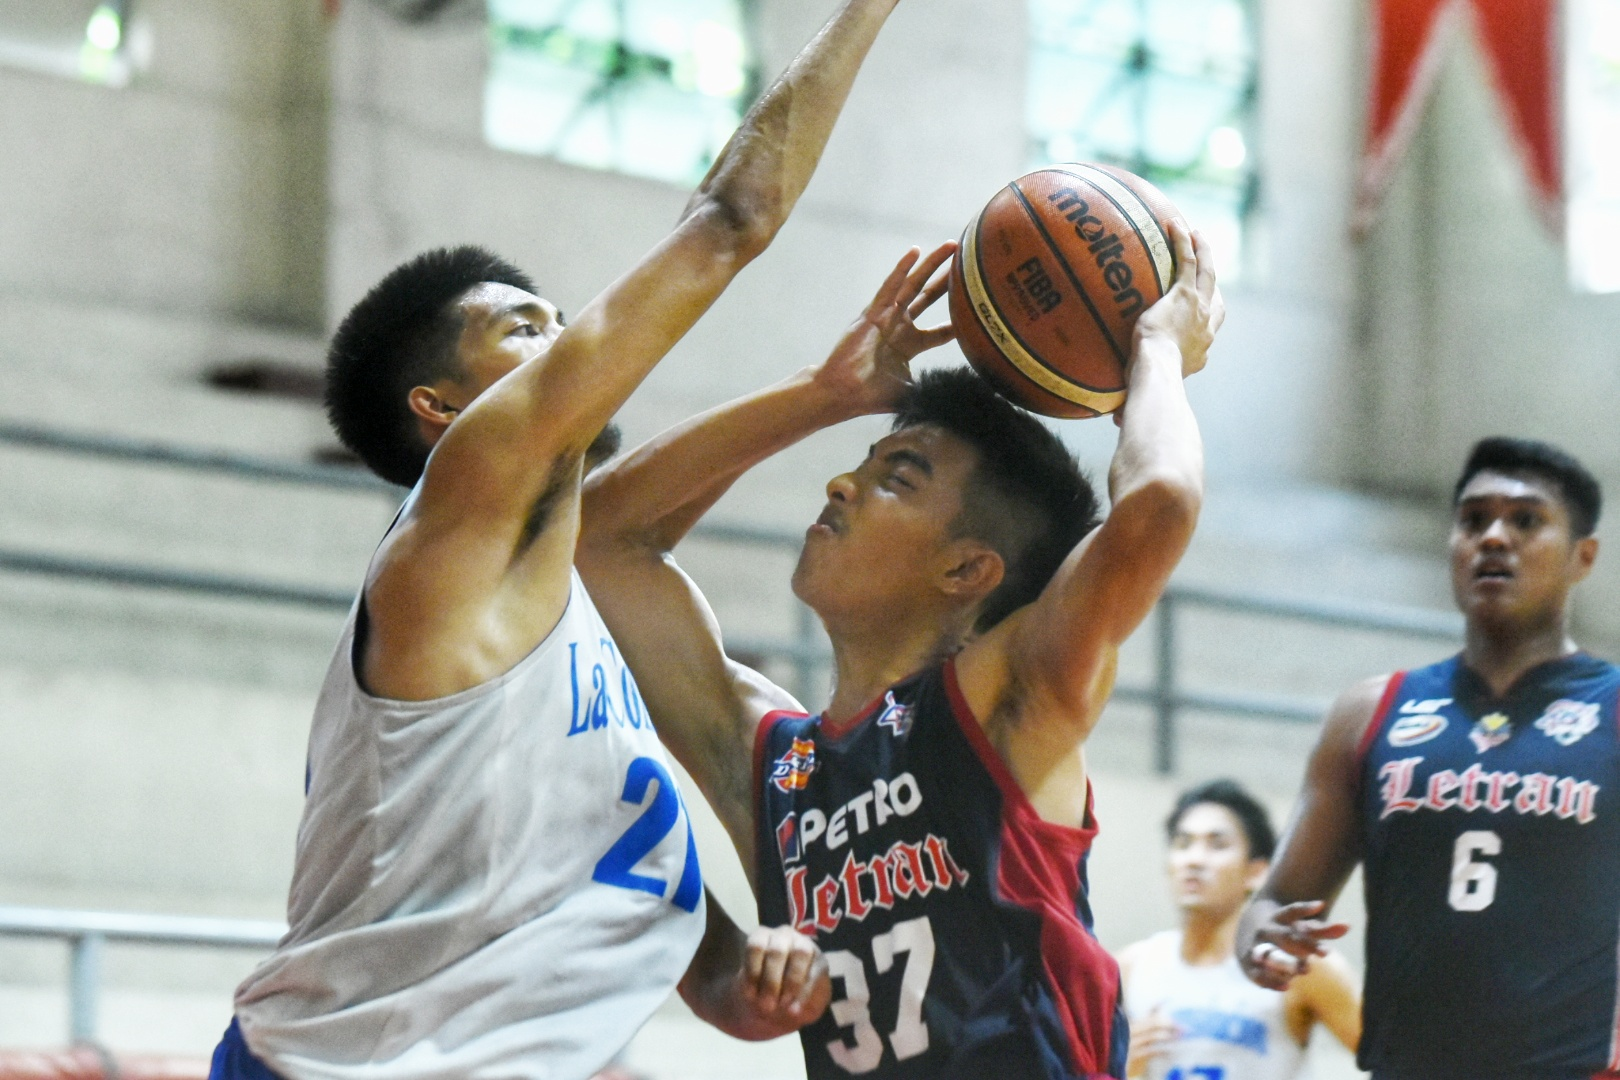 Fr. Martin's Cup: La Consolacion continues roll with win over PCU Dolphins